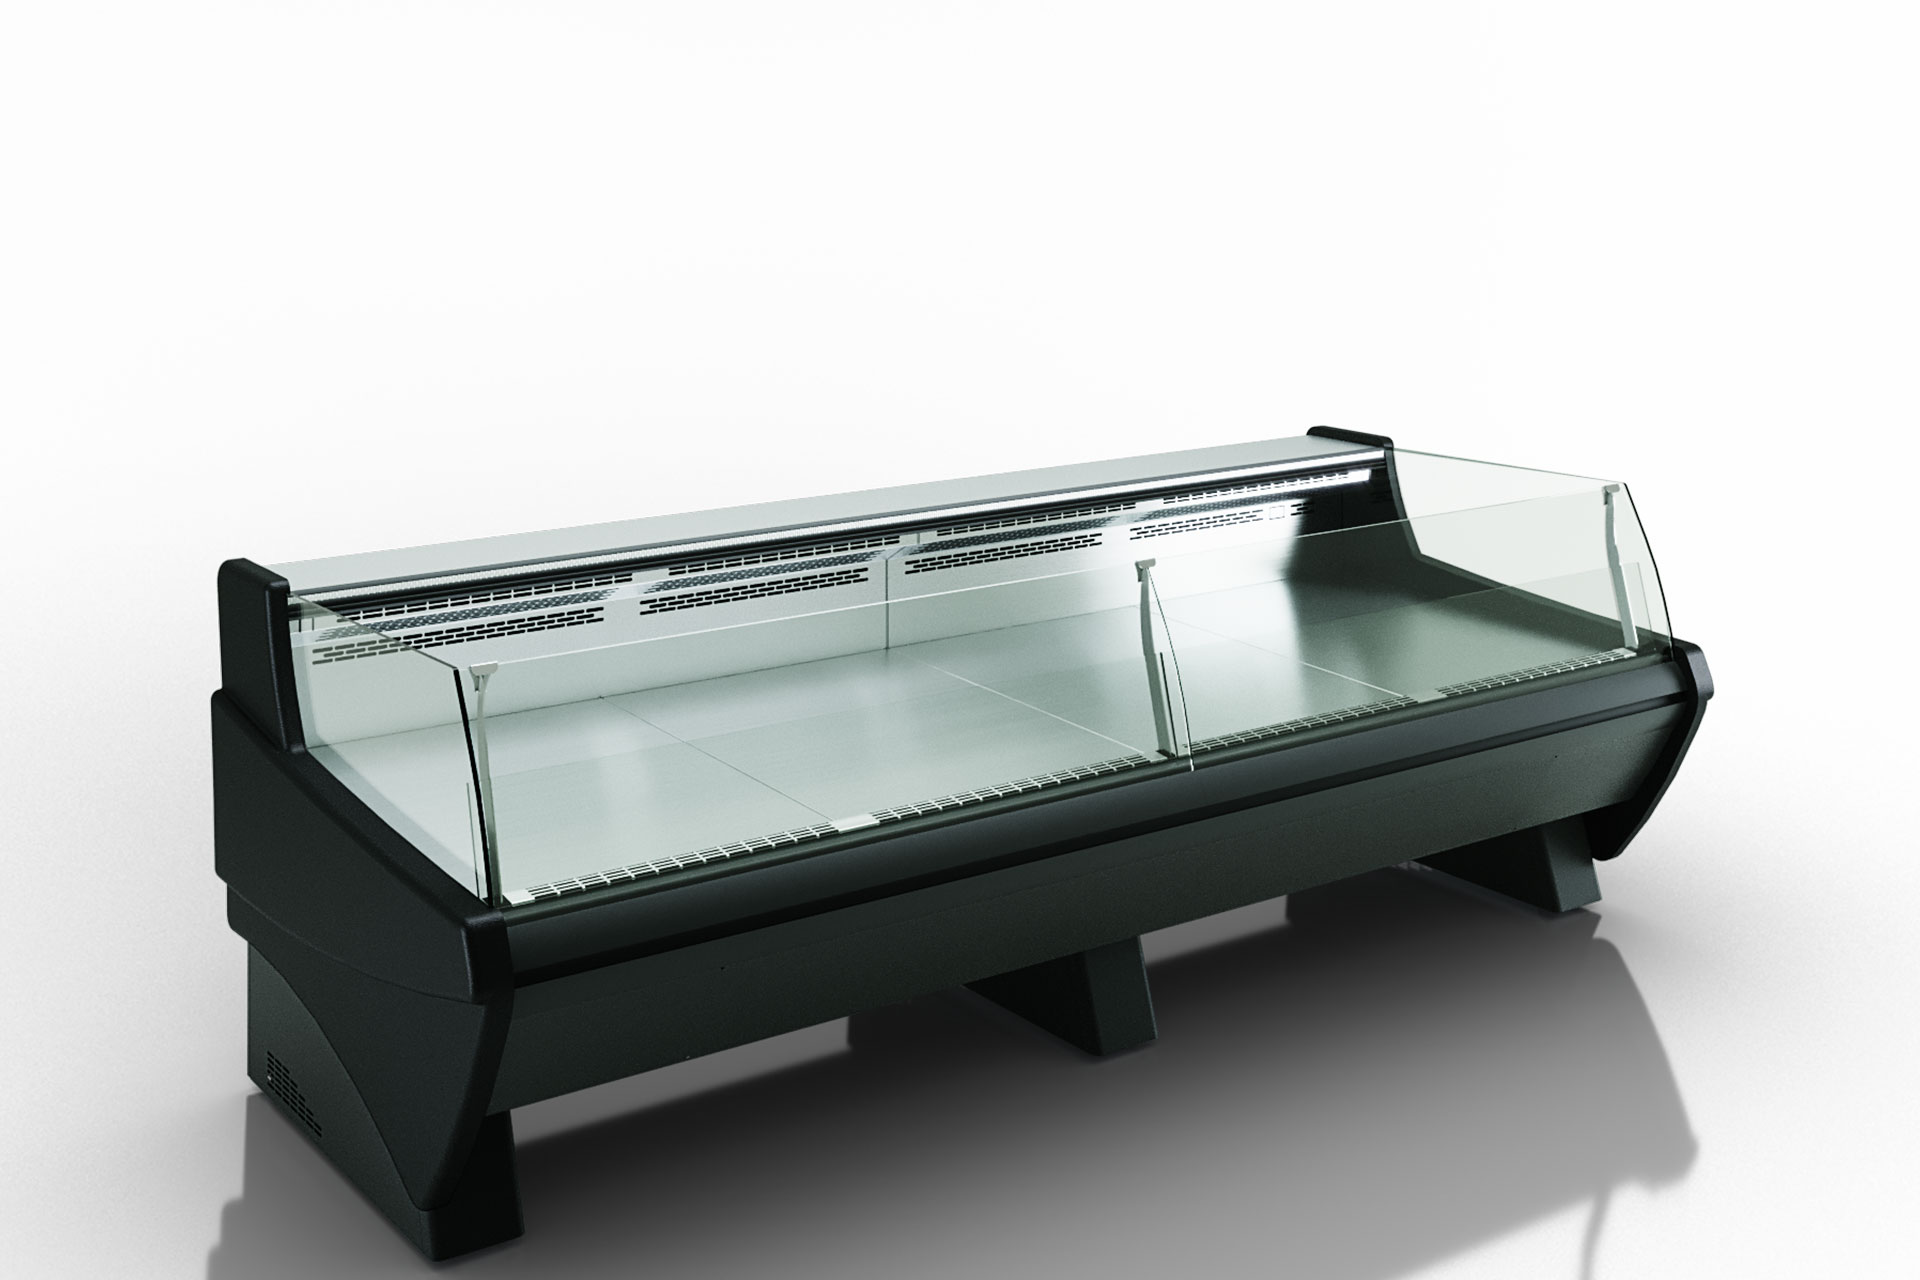 Counter Symphony luxe MG 100 deli self 085-DLM